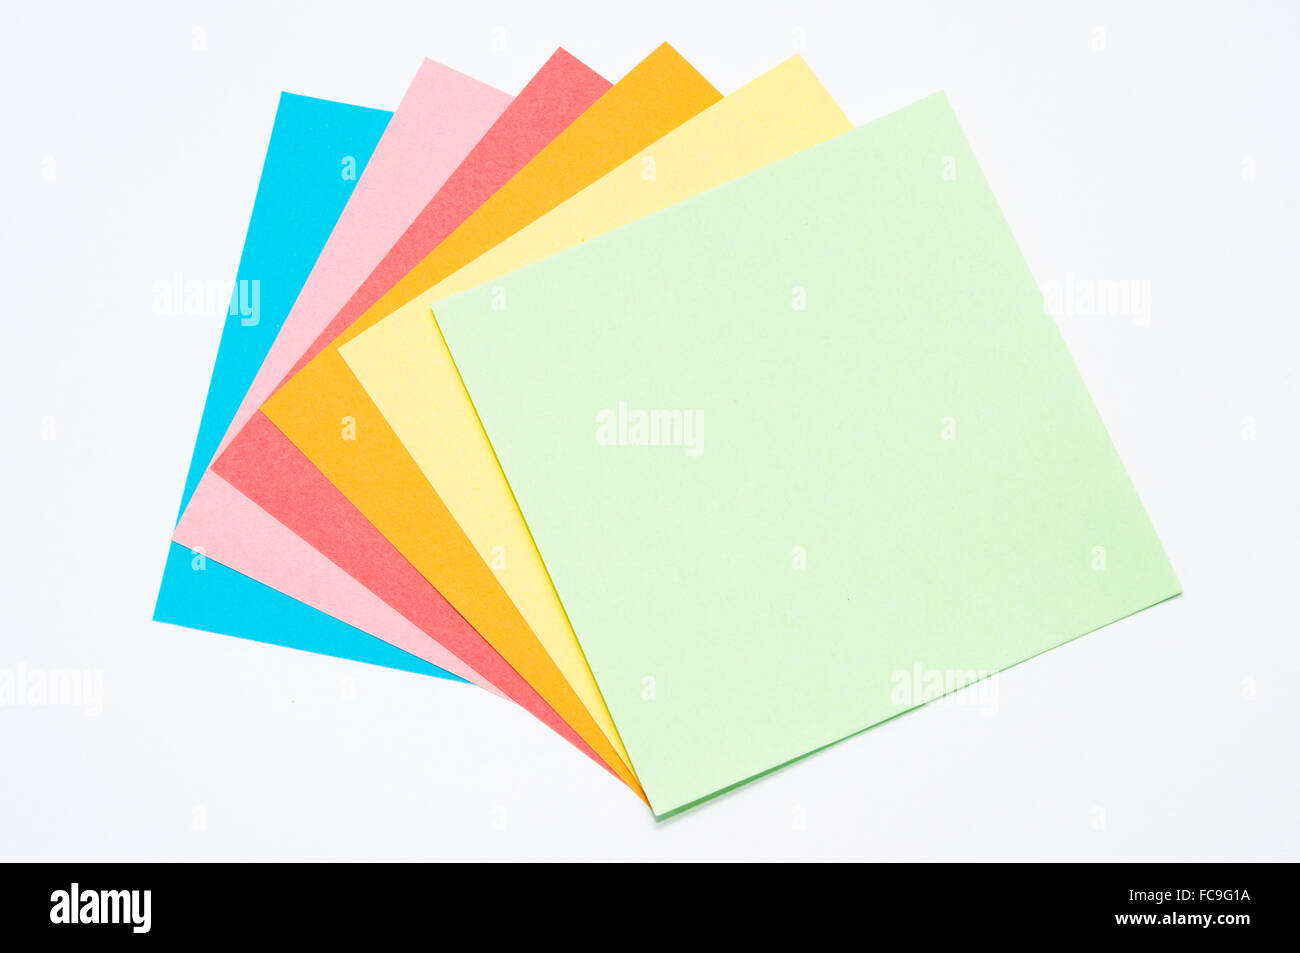 Farbiges Druckerpapier Recycling Farbiges Papier Quadrate Stockfoto Bild 93637862 Alamy